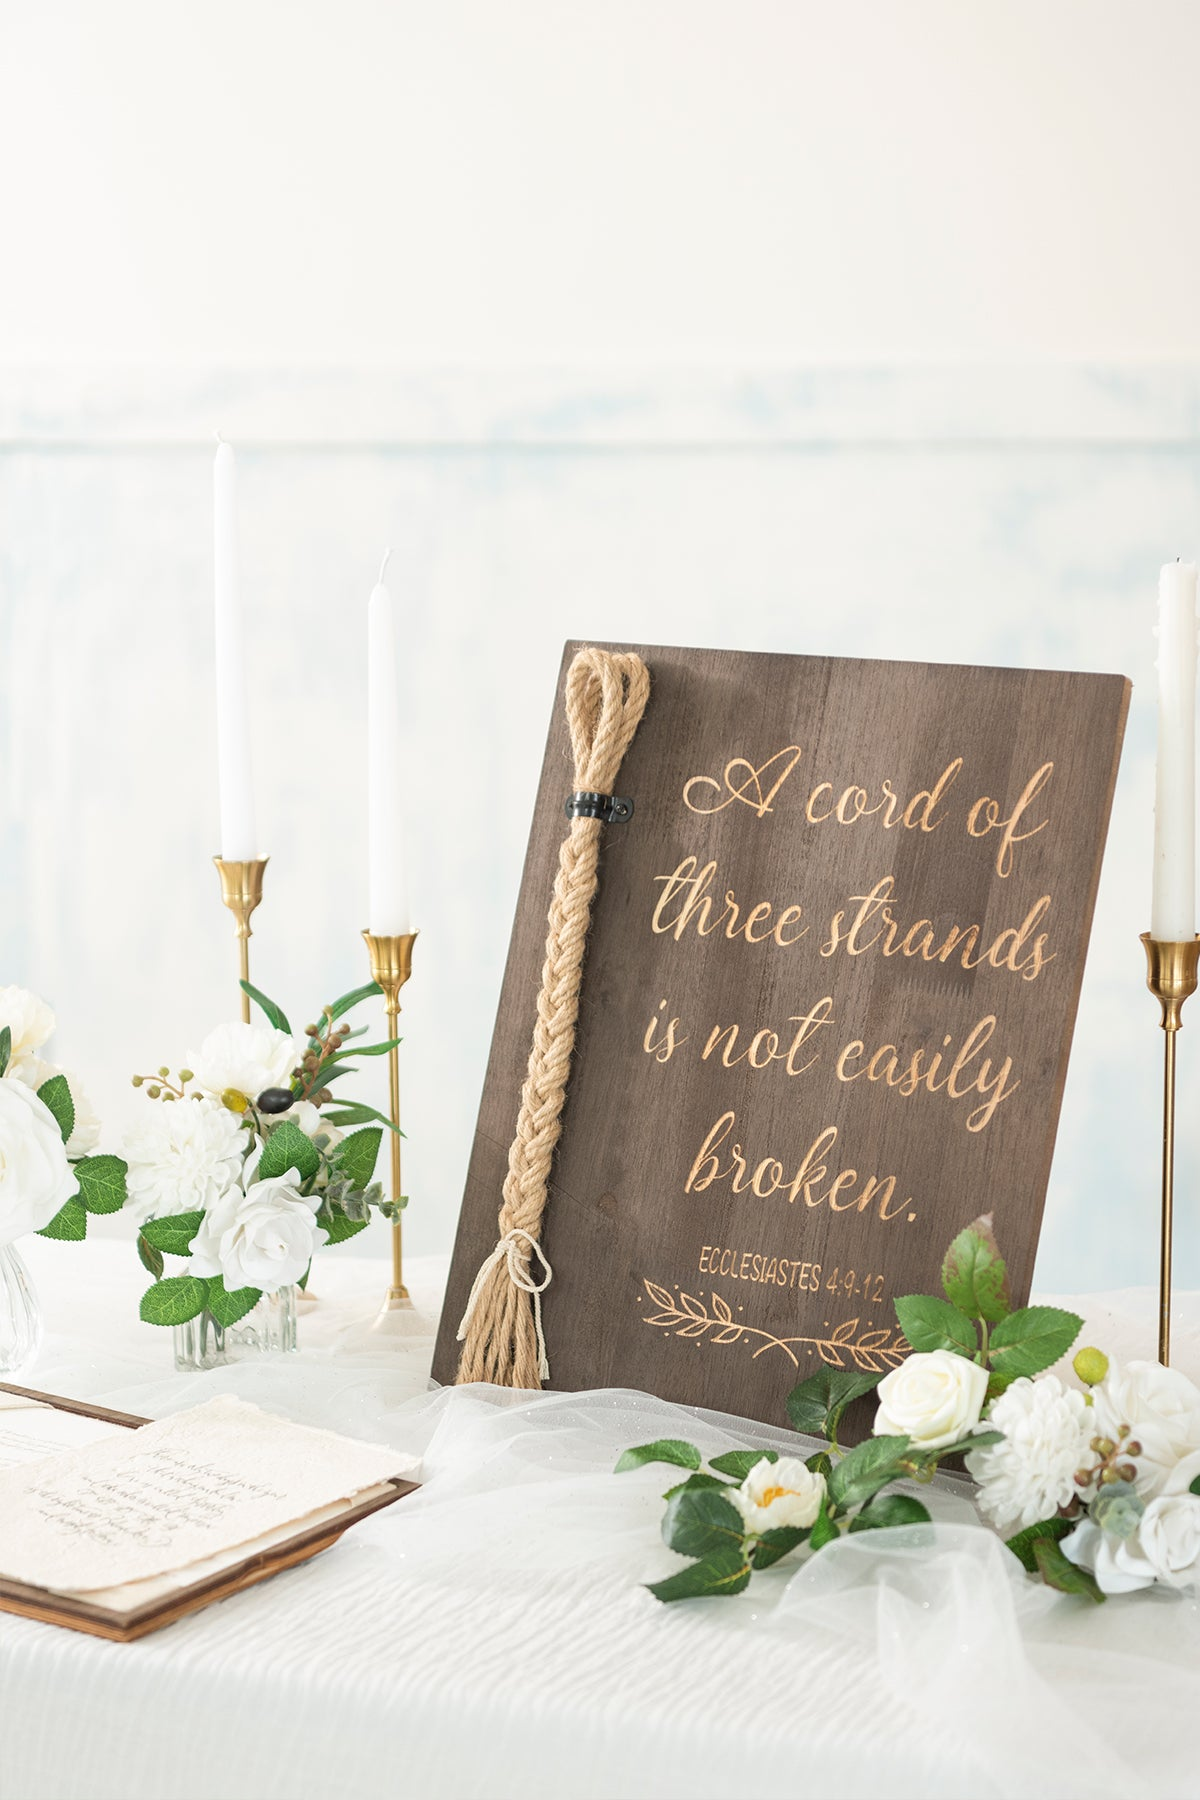 Strand of Three Cords Wedding Ceremony Sign - A Cord of Three Strands is not Easily Broken